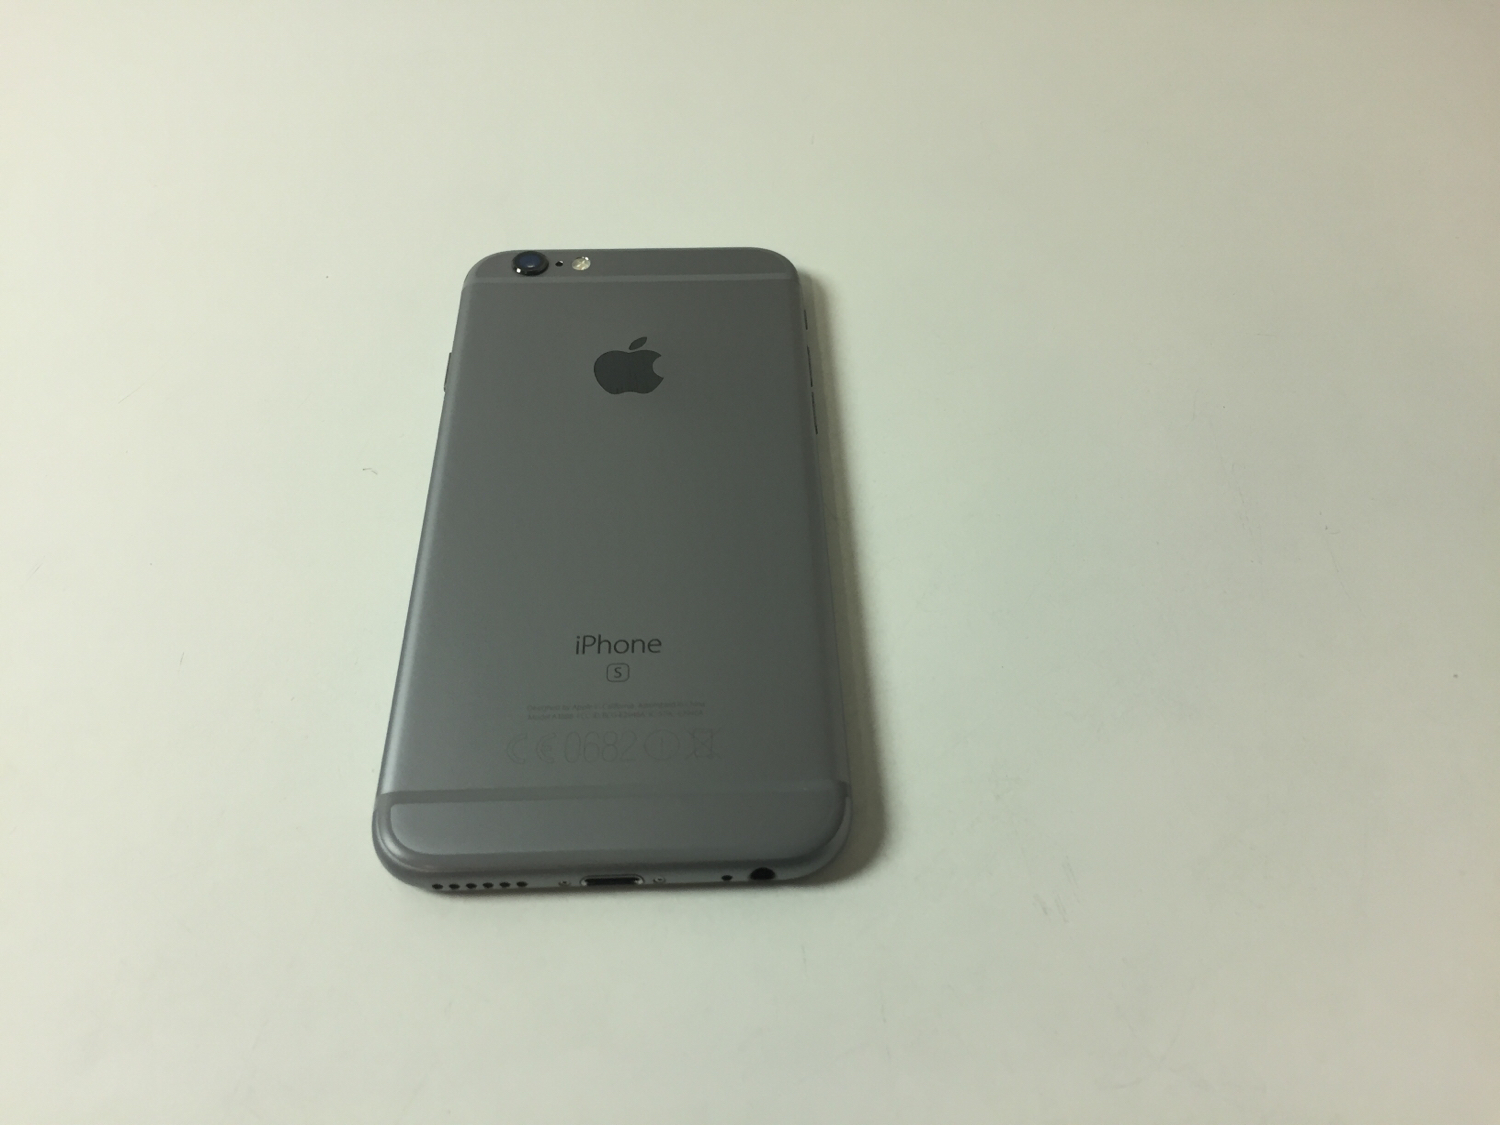 iPhone 6S 16GB, 16GB, Gray, Afbeelding 2